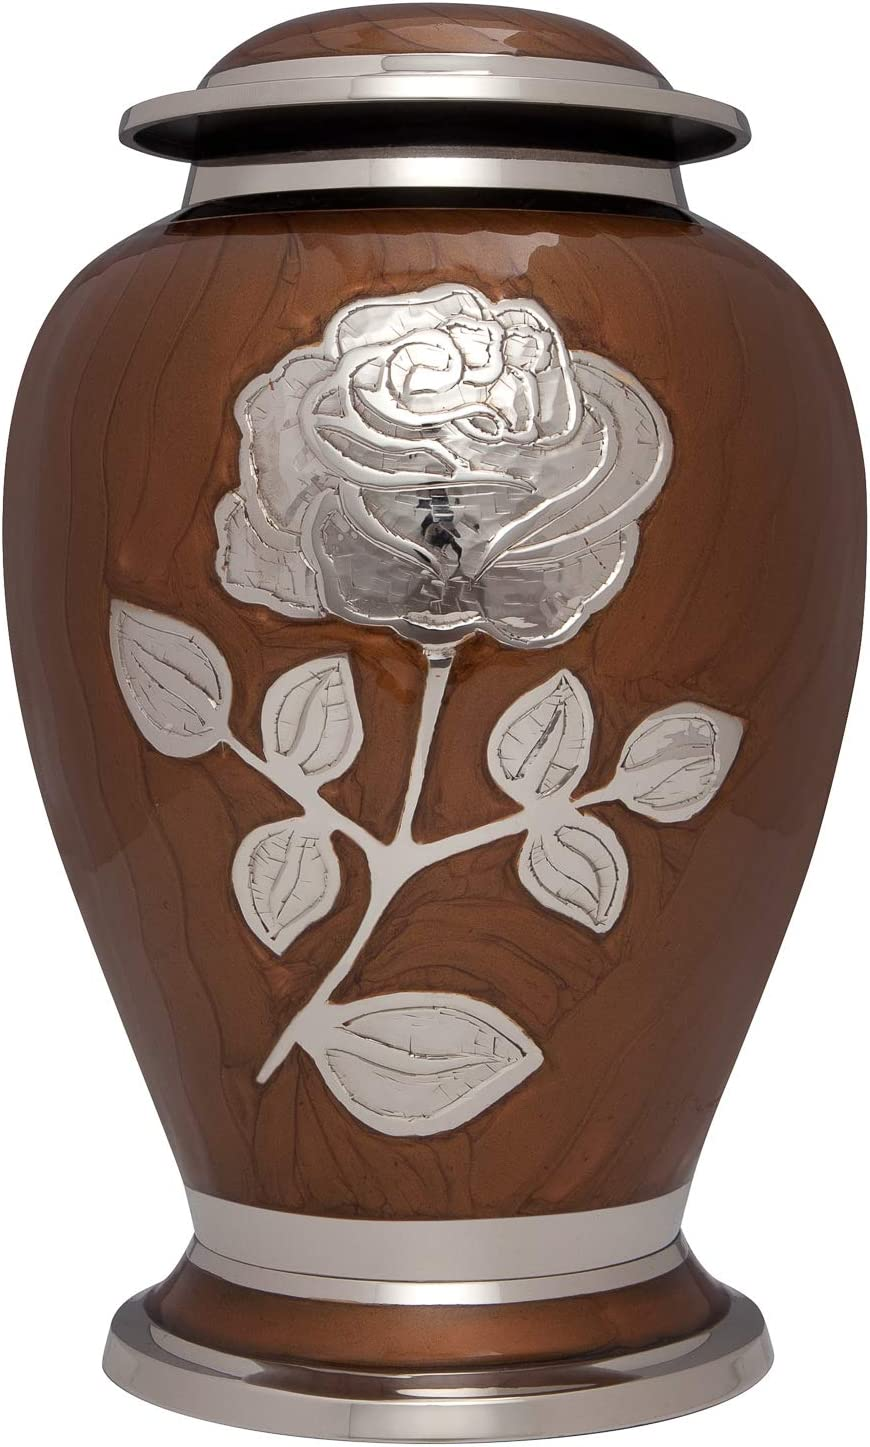 Ansons Urns Silver Rose Cremation Urn - Funeral Urn with Large Flower on Enamel - Burial Urn for Human Ashes Adult Size - 100% Brass (Brown)